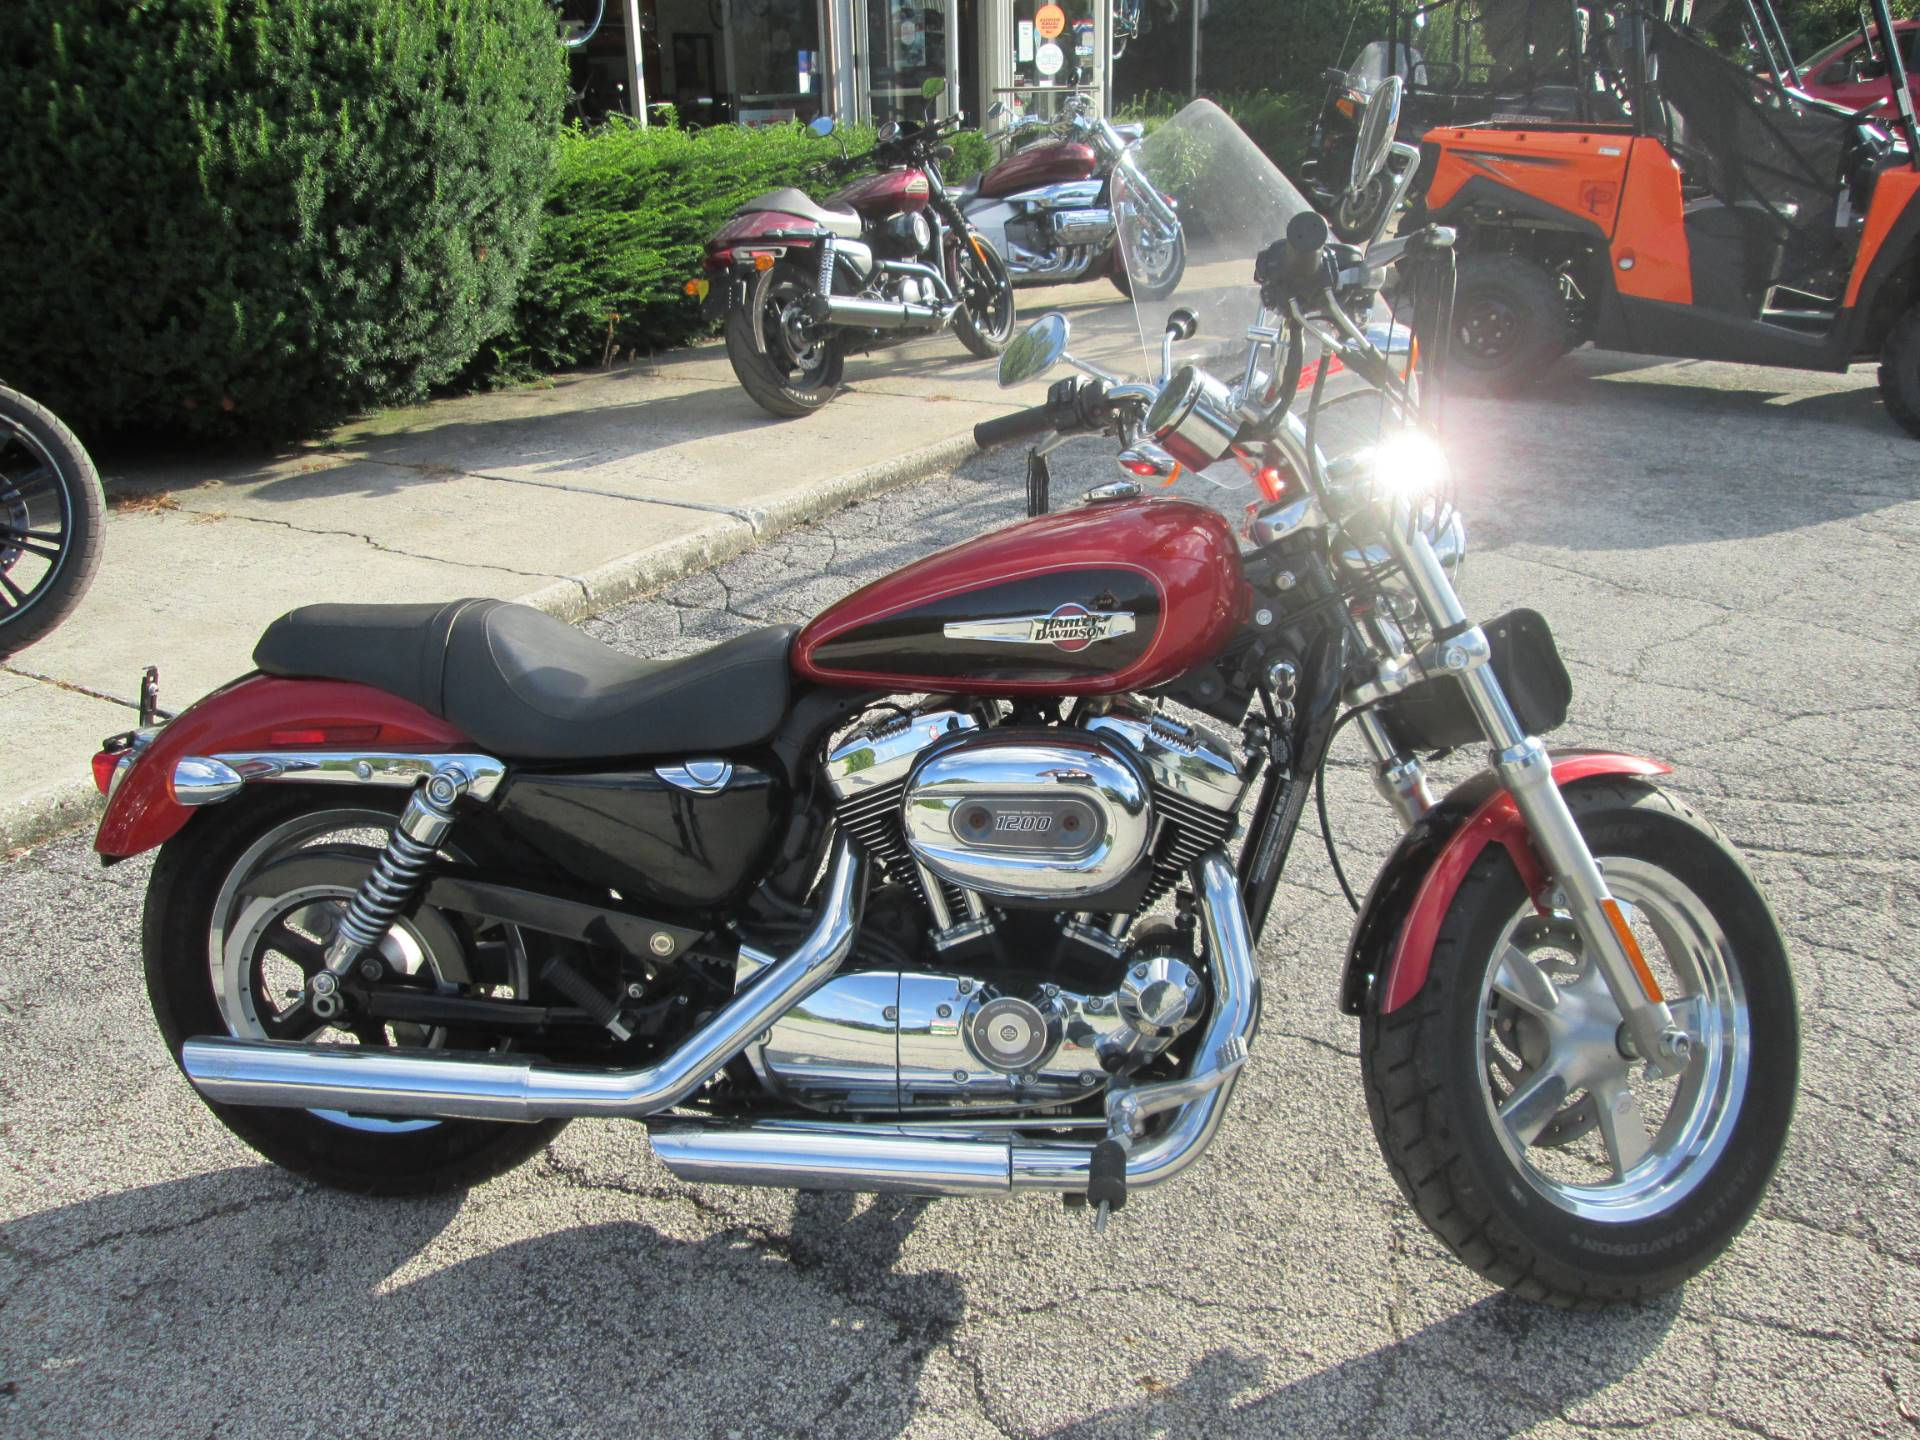 2013 Harley-Davidson Sportster® 1200 Custom in Valparaiso, Indiana - Photo 1